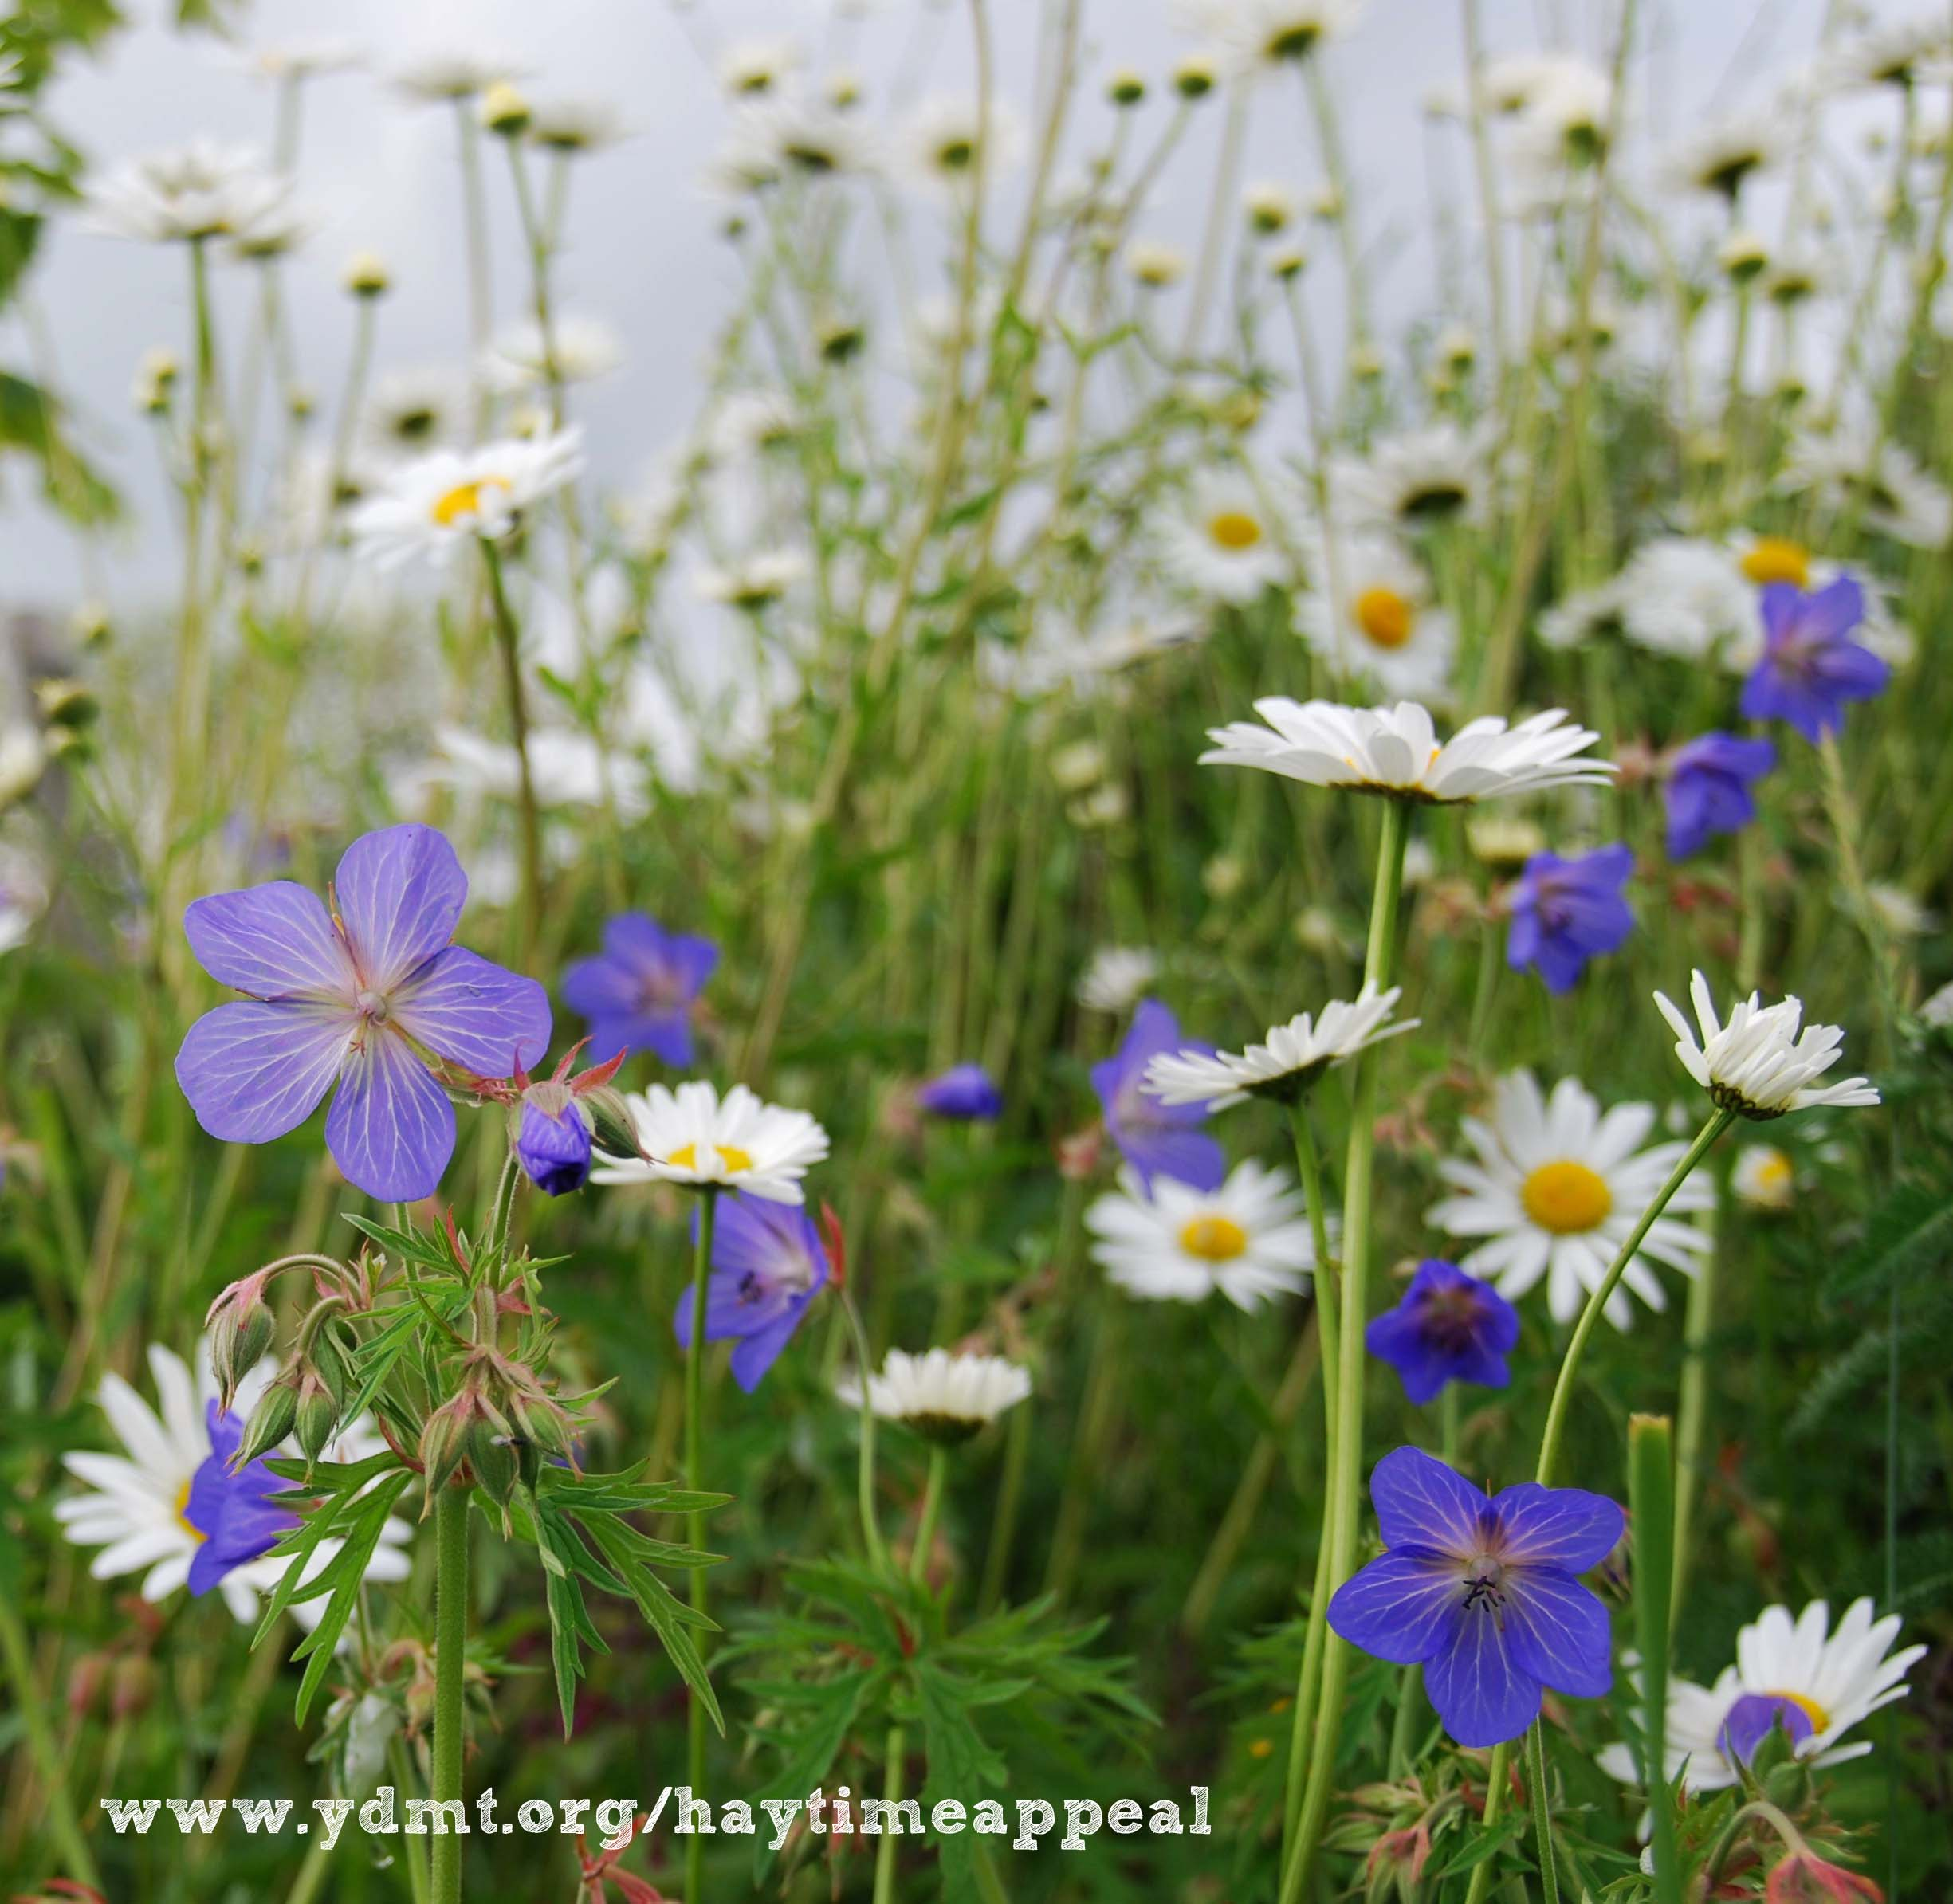 One hay meadow can support up to 120 species of plants, please help us save them www.ydmt.org/haytimeappeal